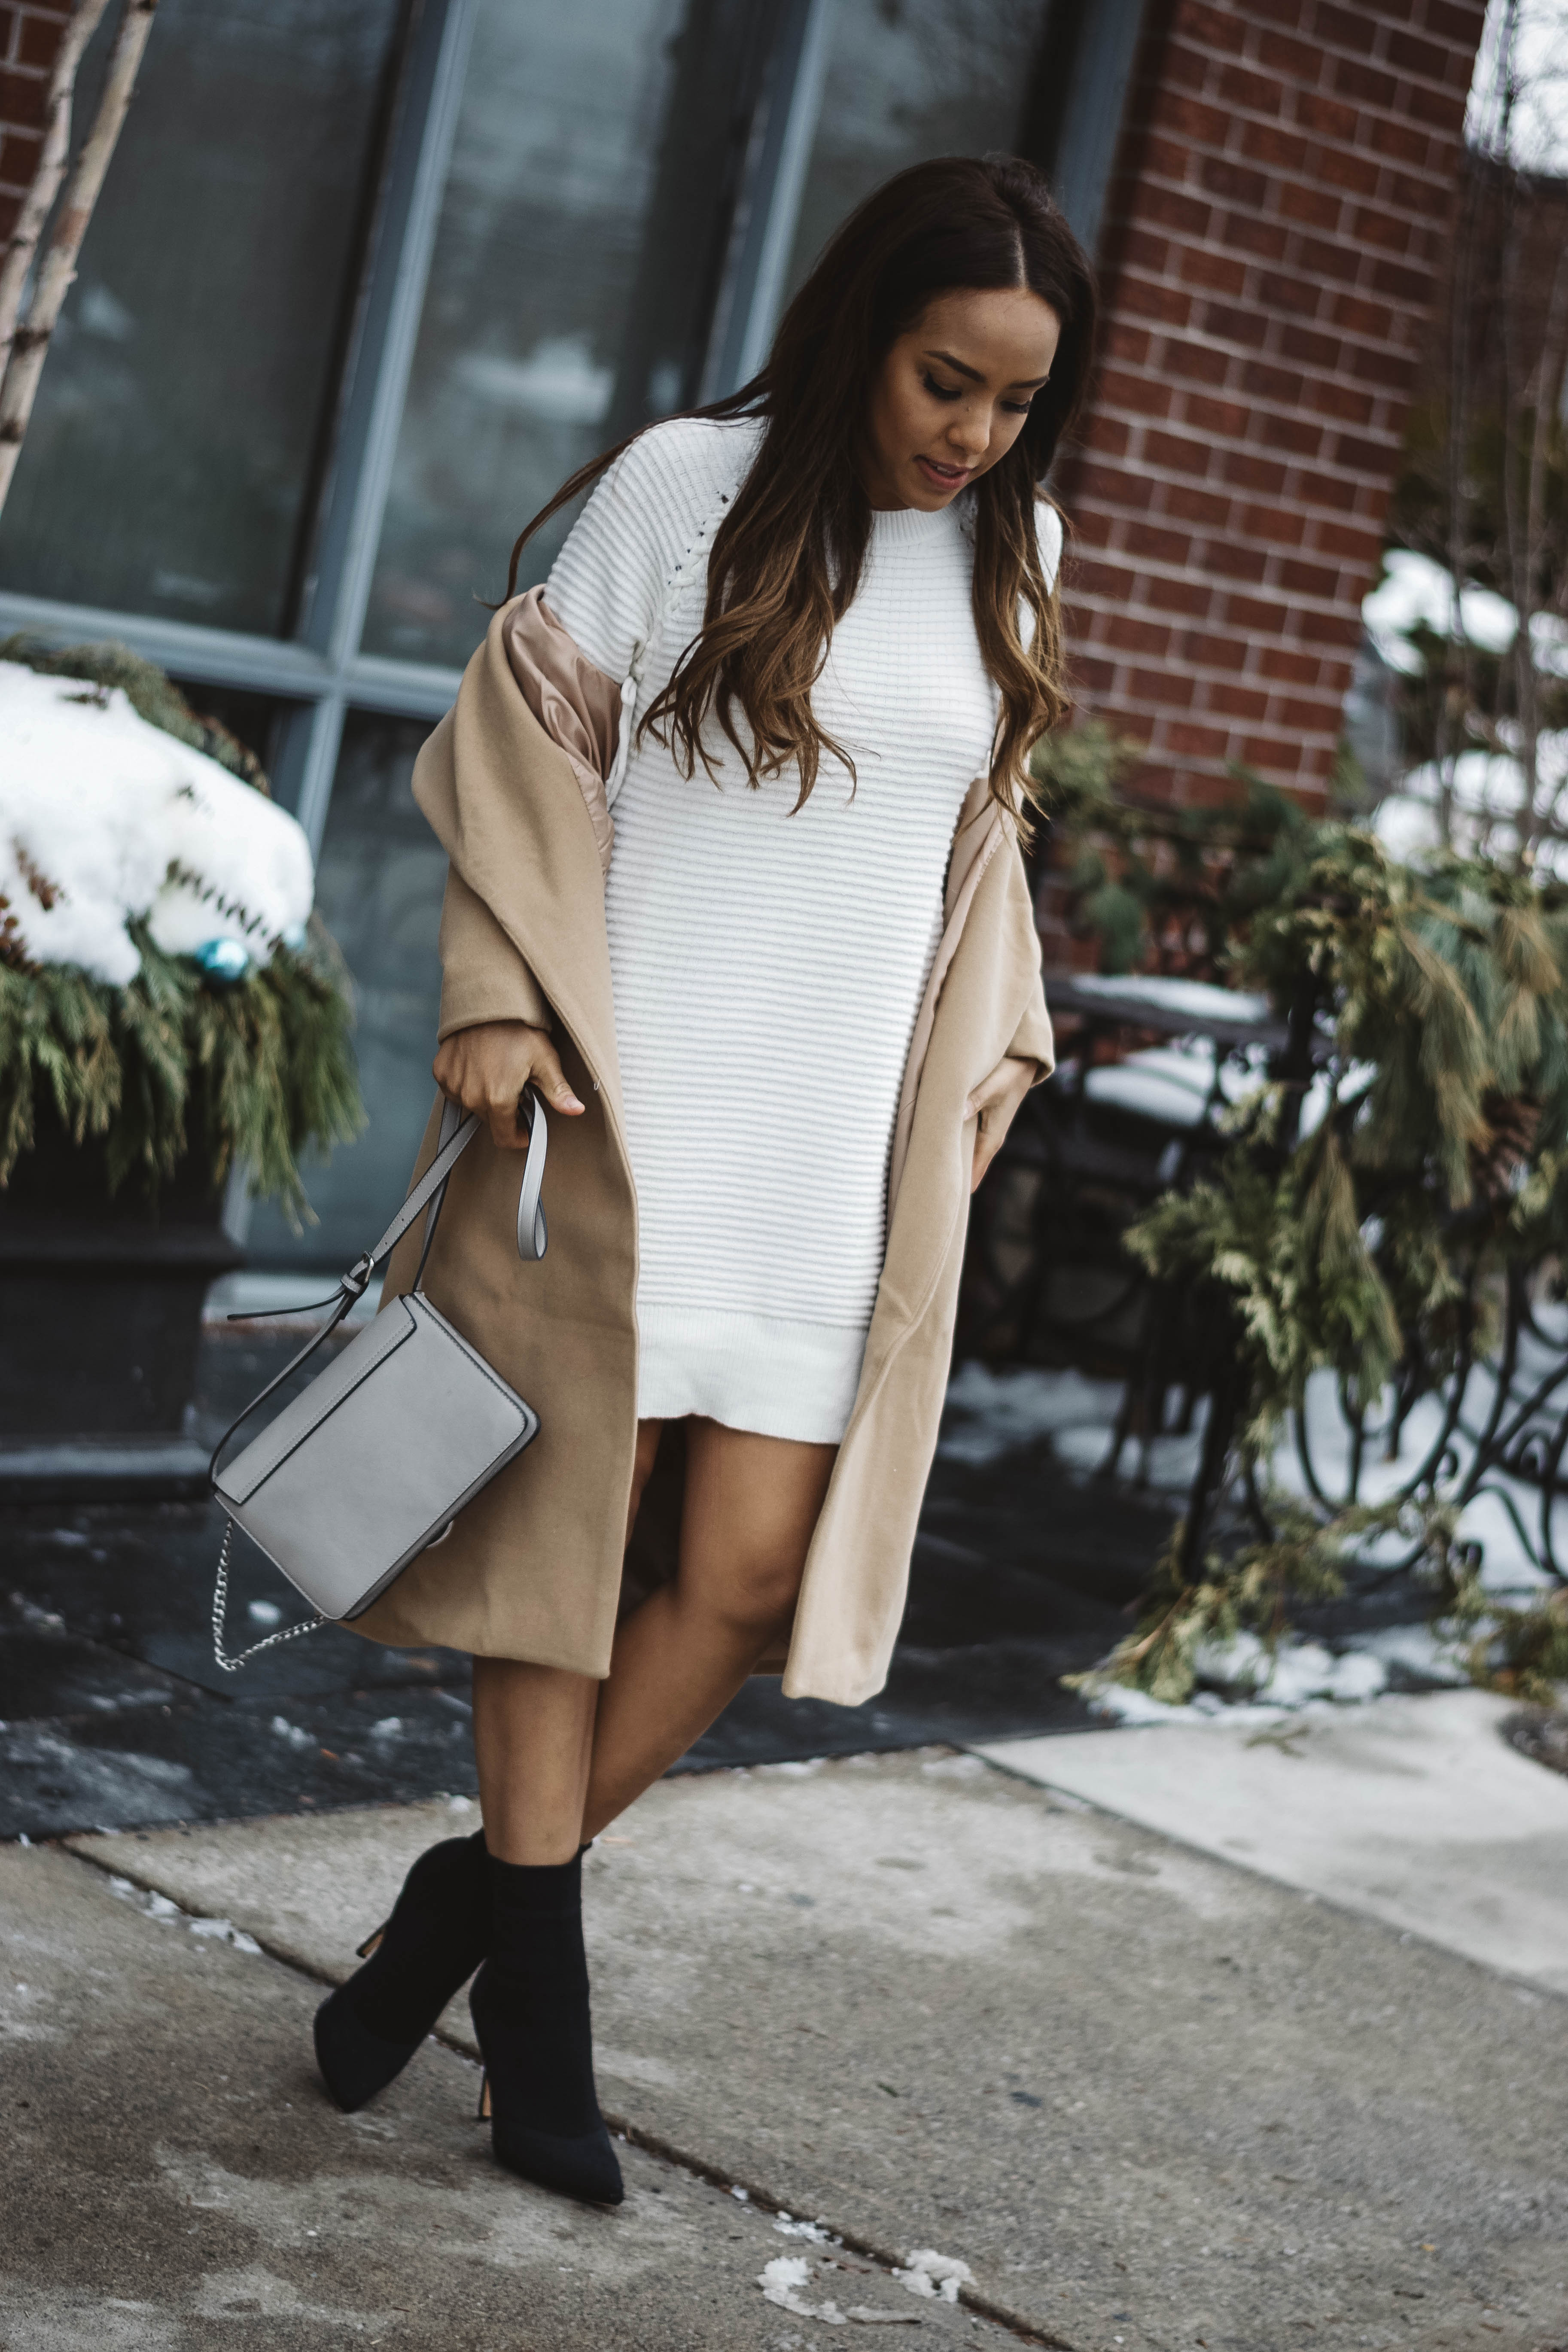 Top 5 Camel Coats for Under $200